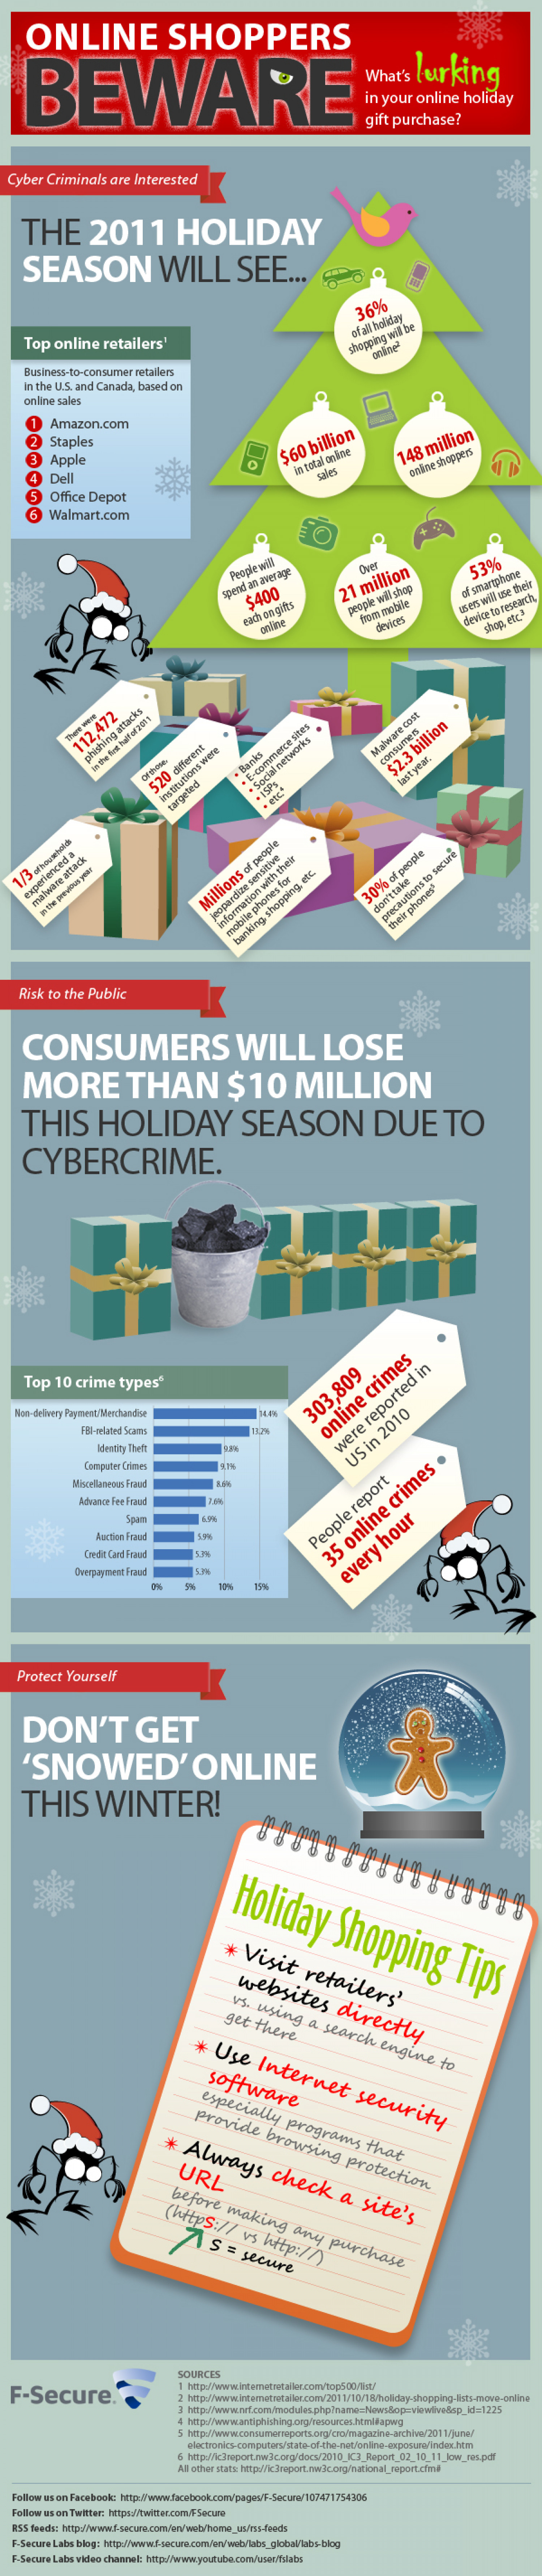 Online Shoppers Beware Infographic